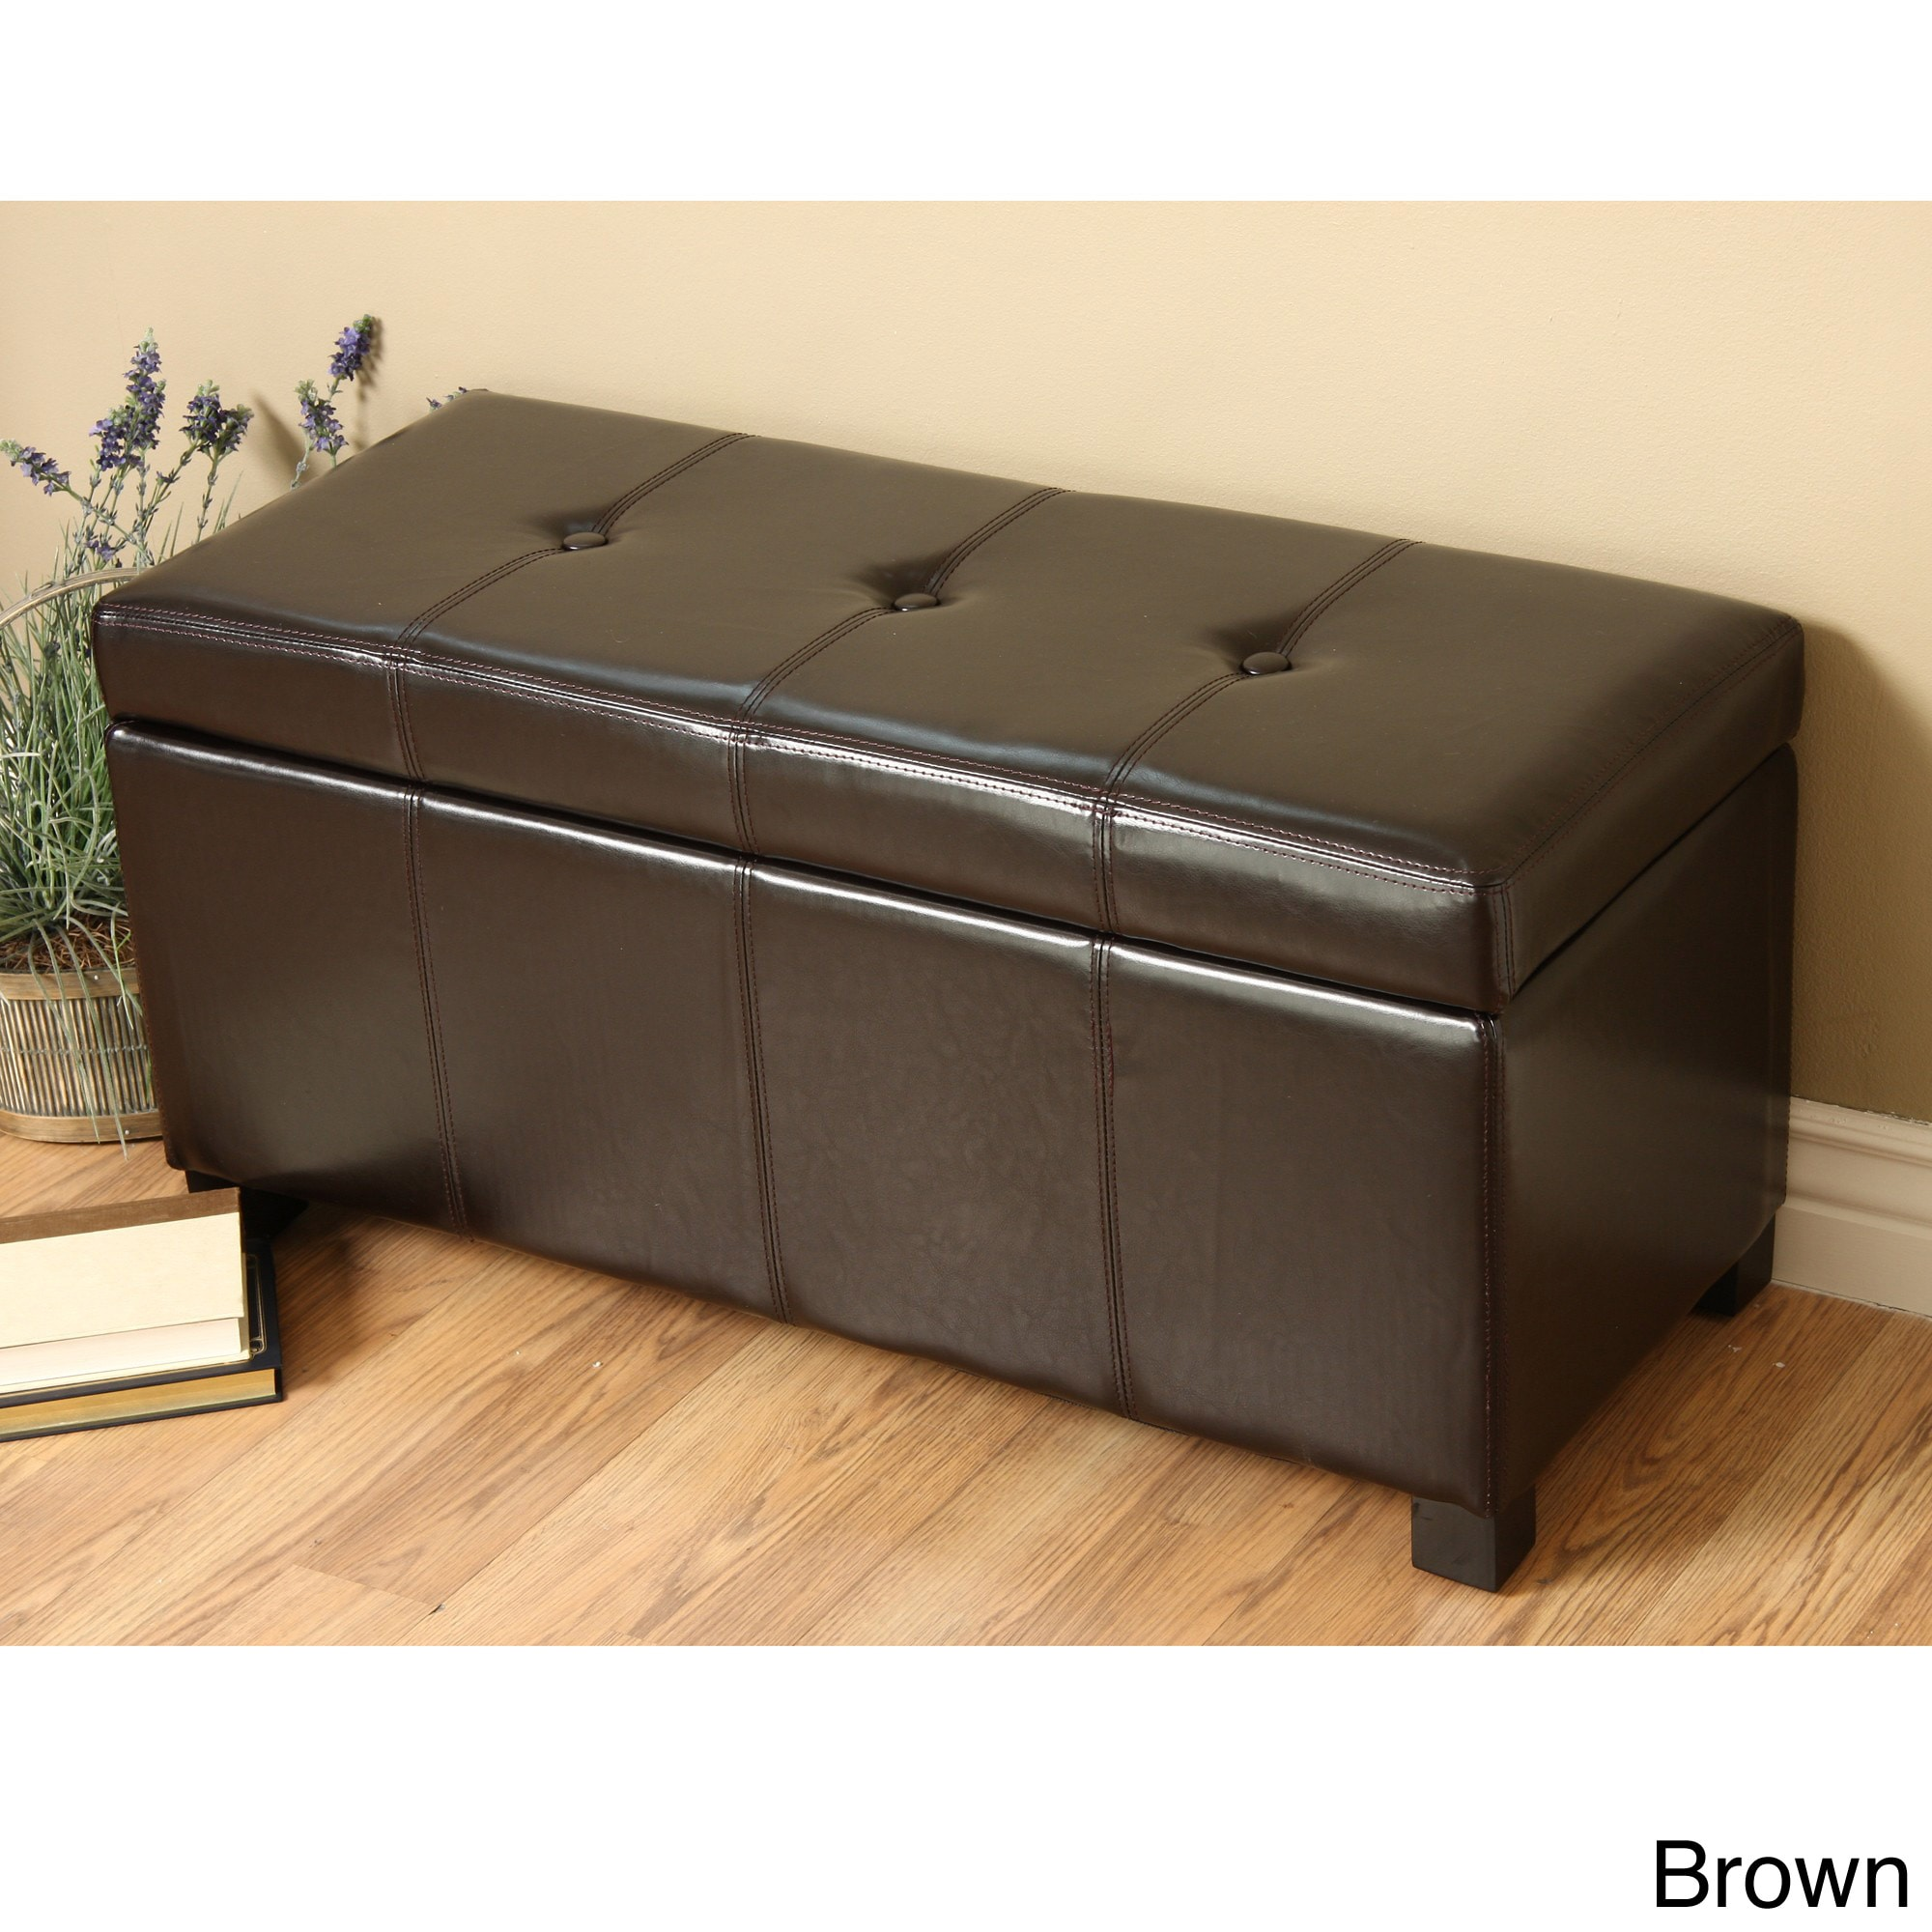 New Modern Faux Leather Storage Bench Living Room Accent